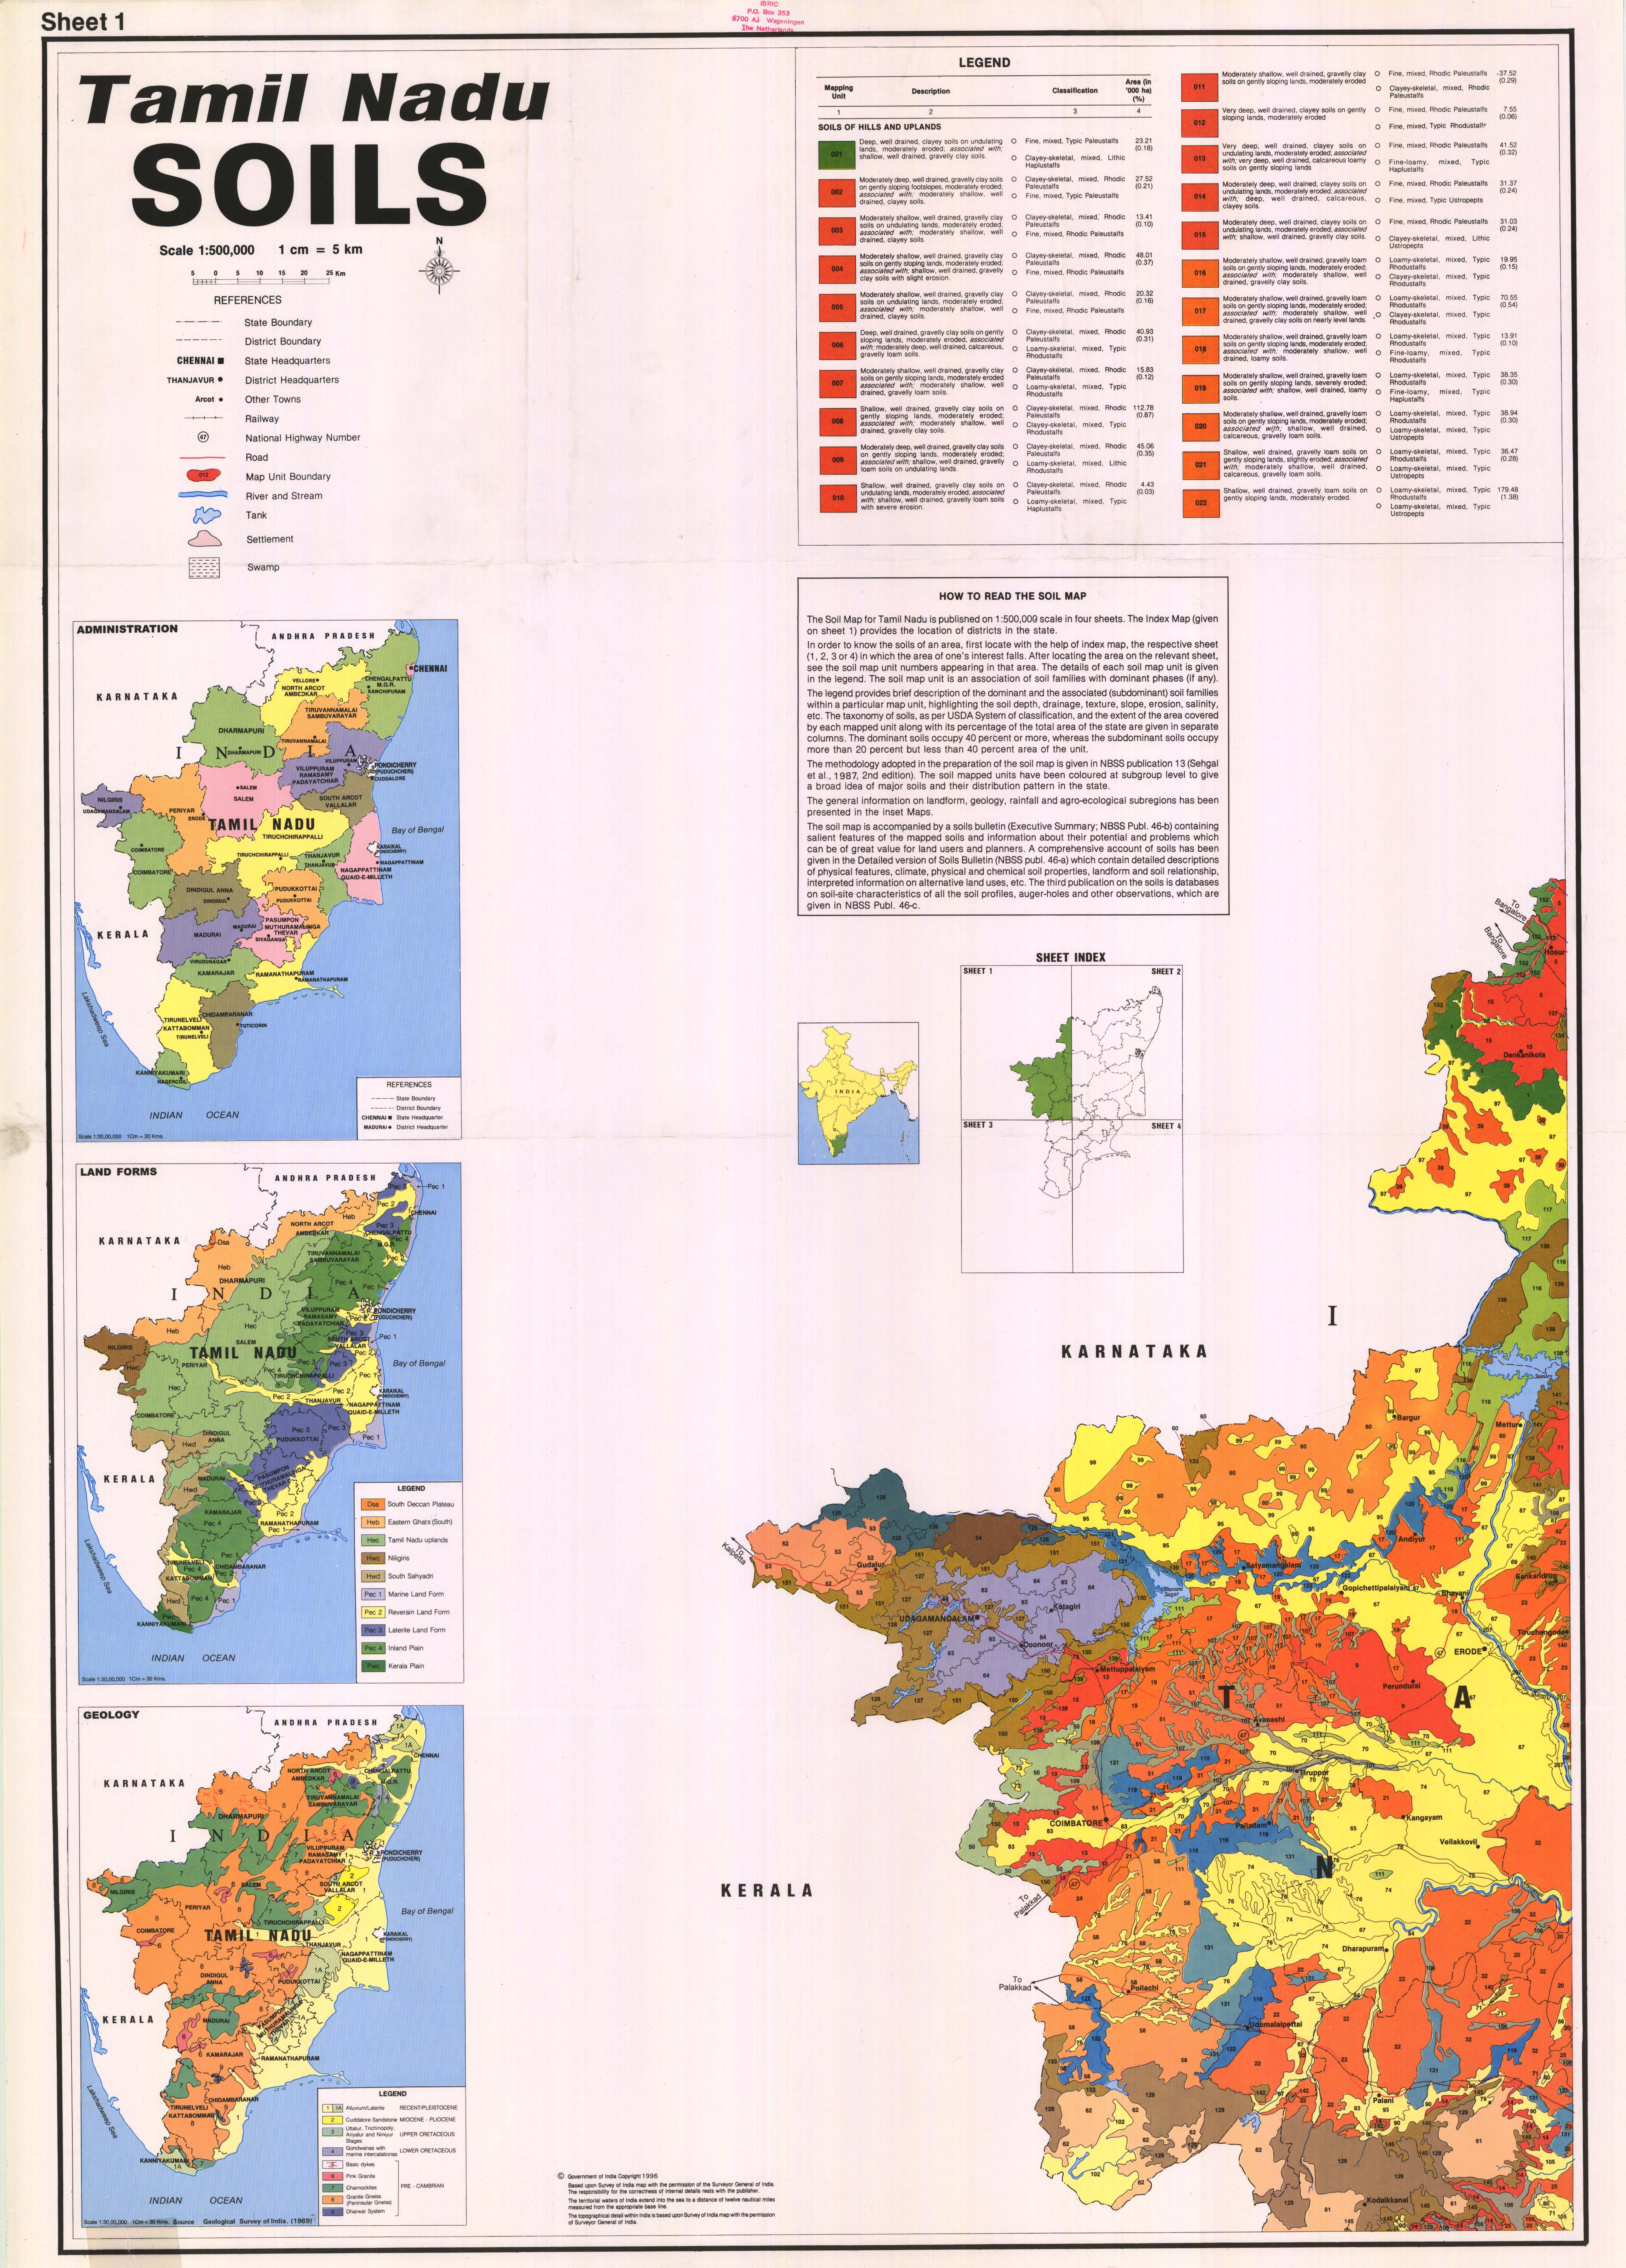 Tamil Nadu  Soils  Sheet 1  - ESDAC - European Commission